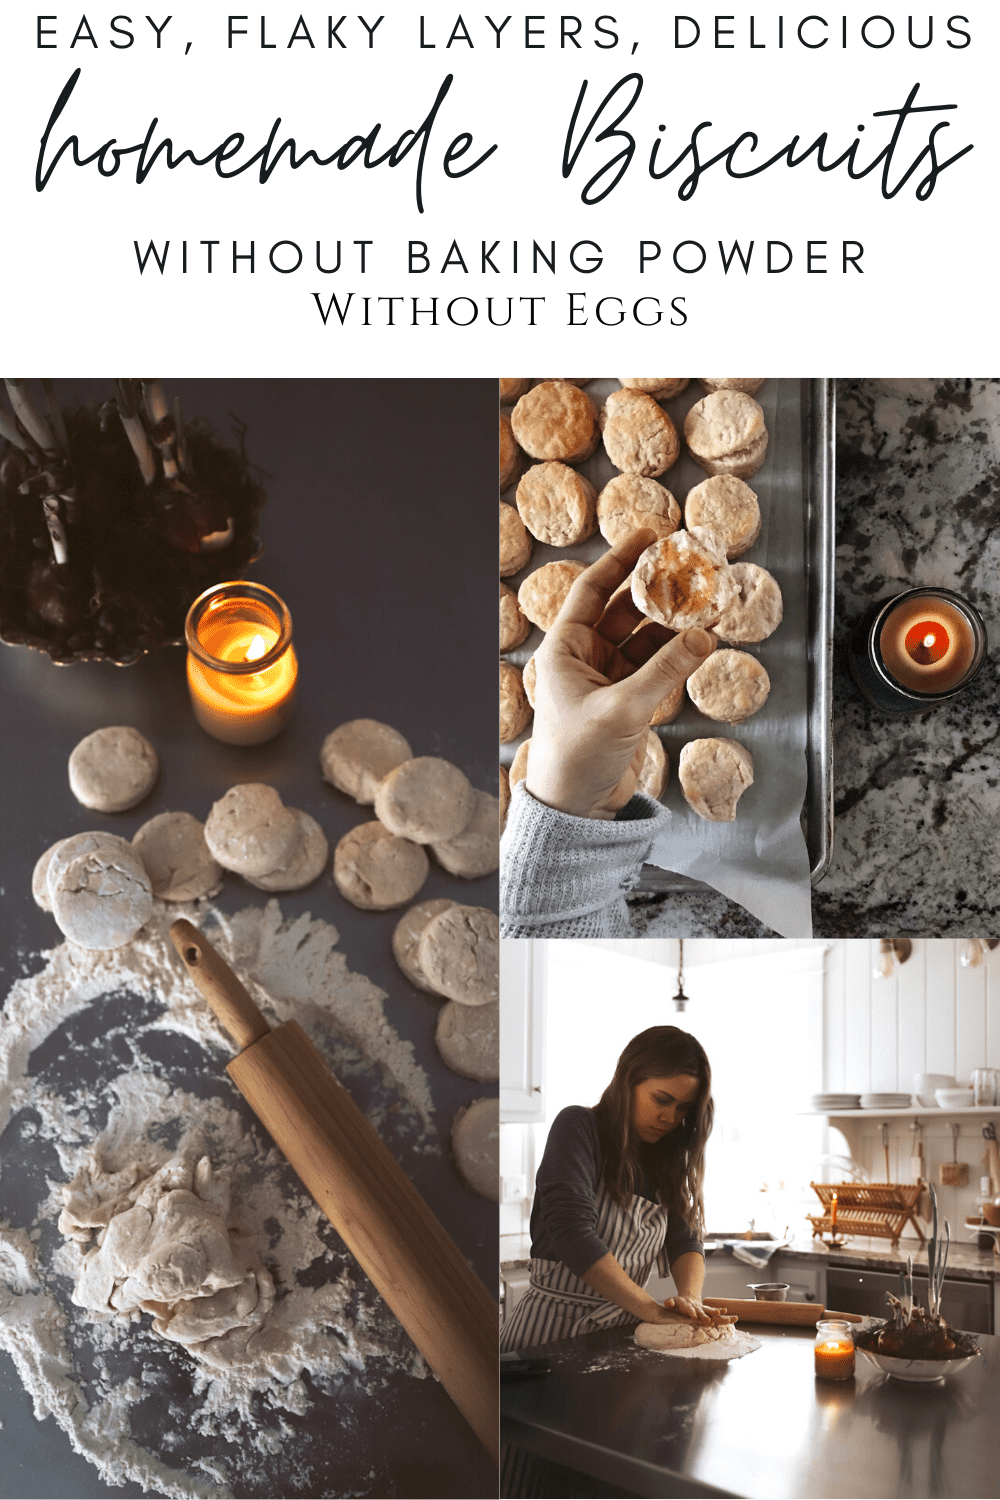 biscuits without baking powder without eggs